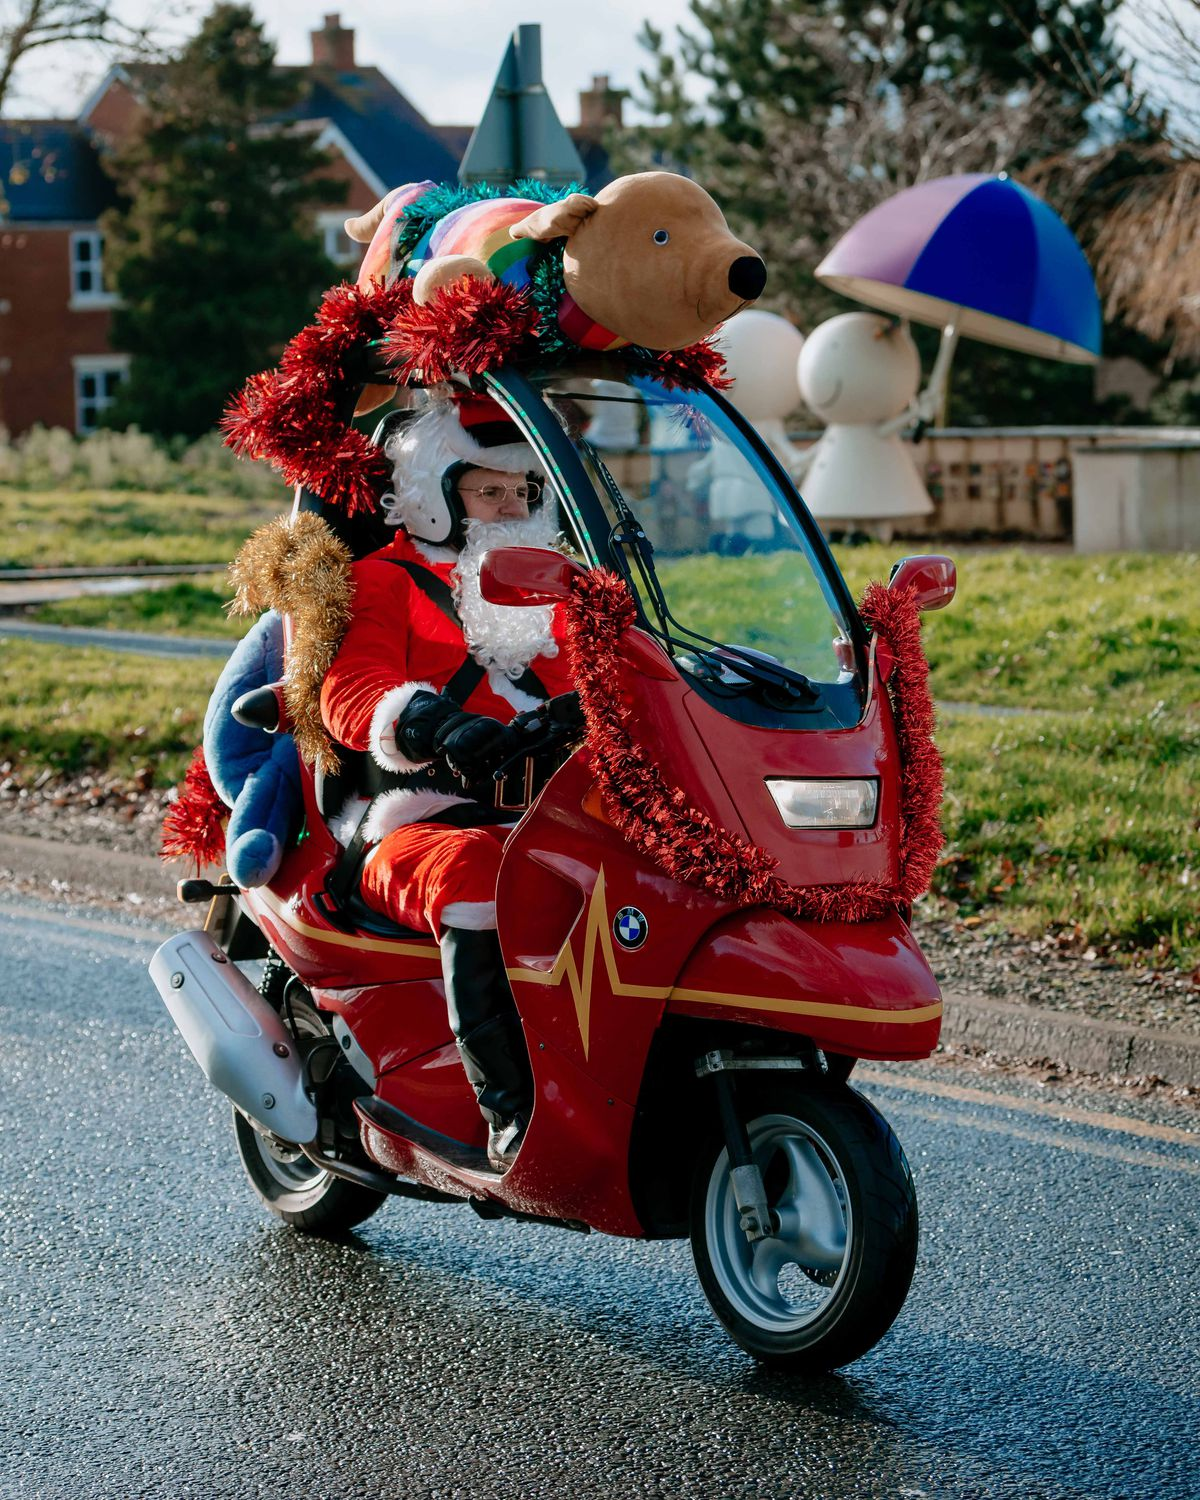 The Midlands Riders' 2019 Christmas Toy Run